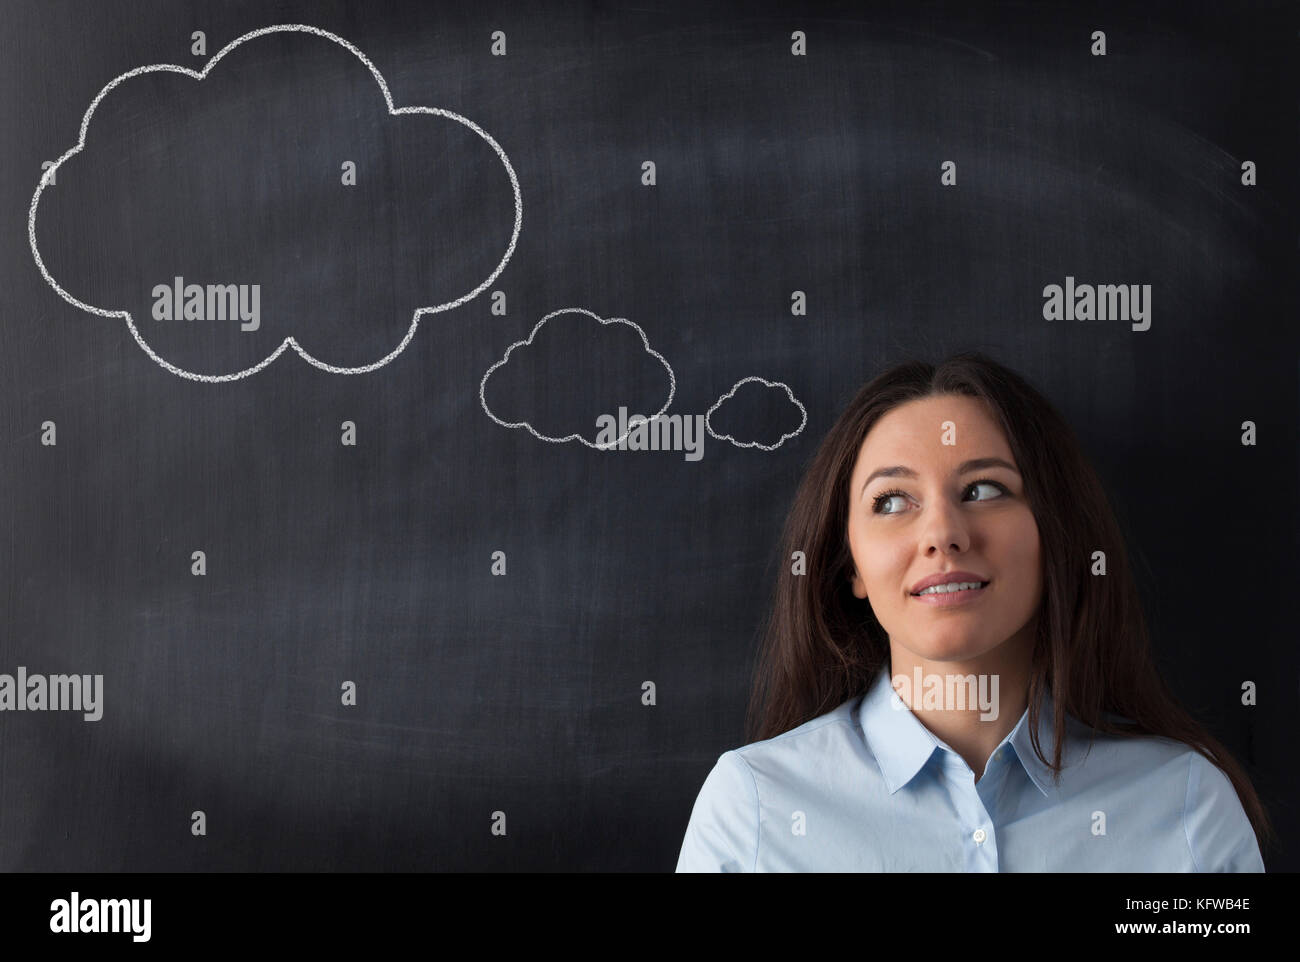 Young businesswoman thinking while standing against cloud chalk drawing on blackboard - Stock Image